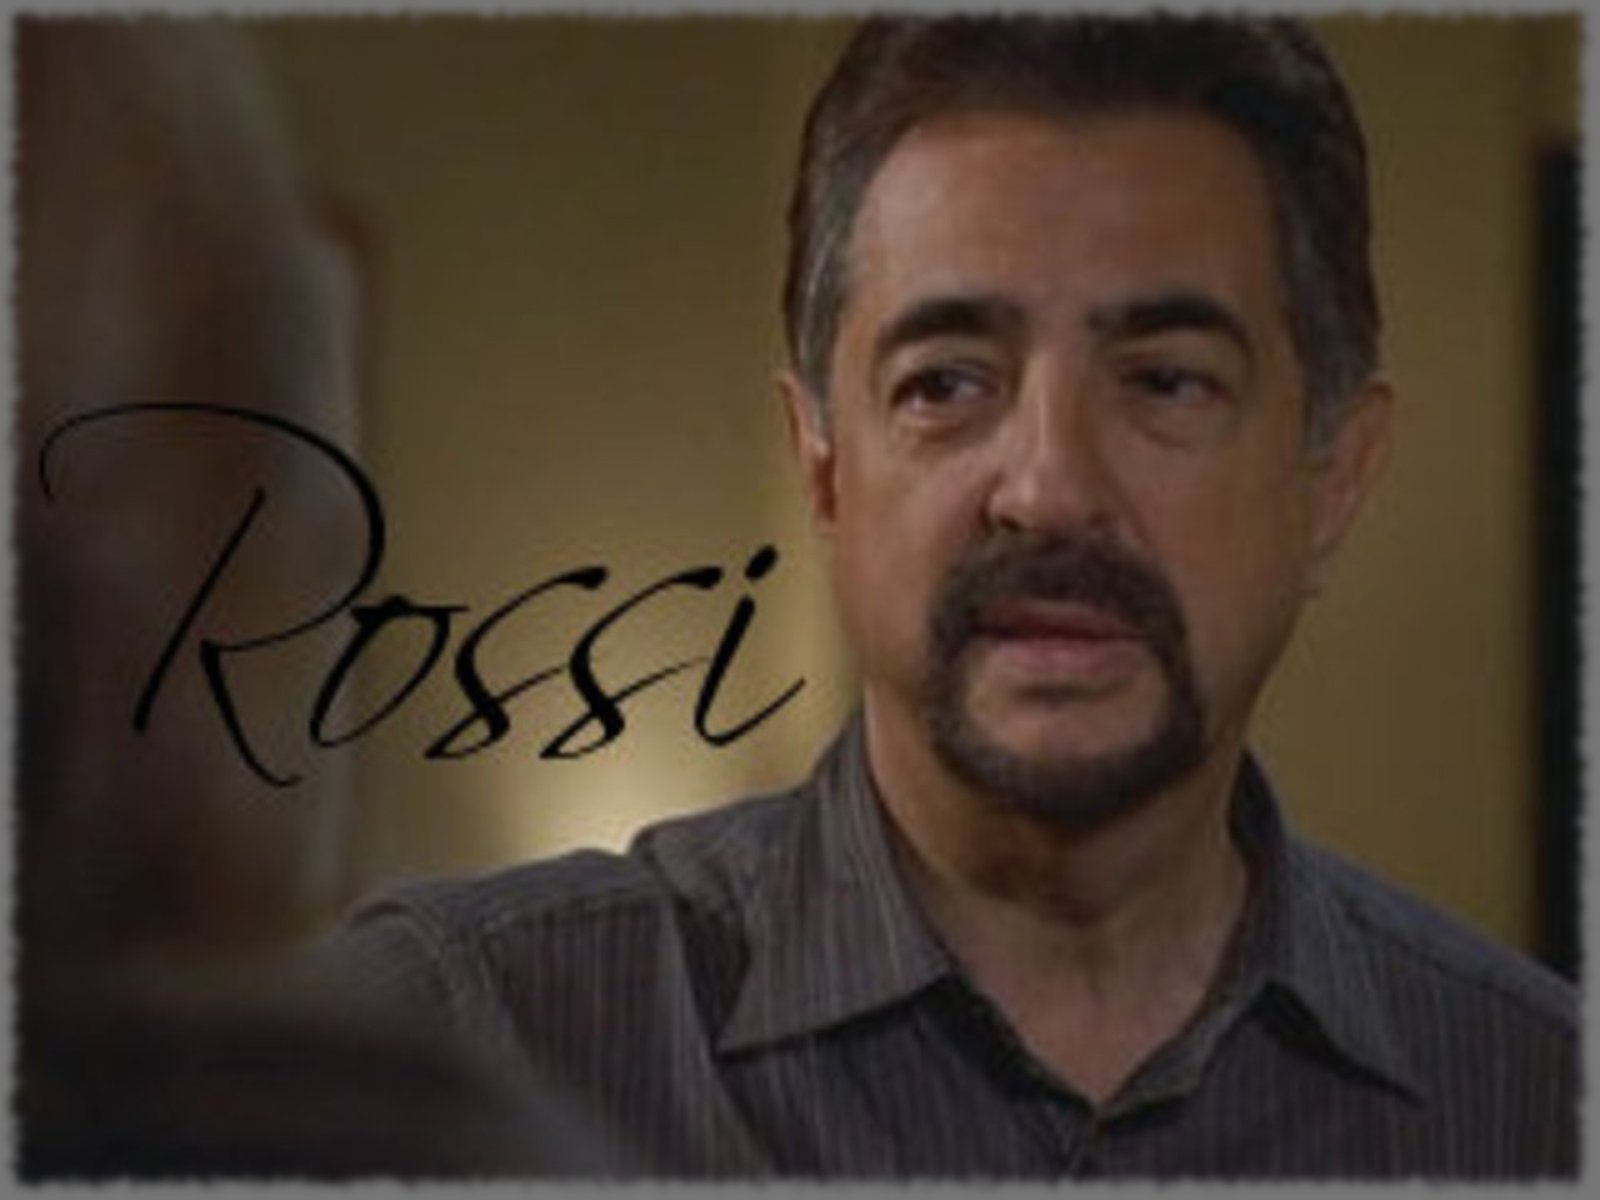 http://images2.fanpop.com/image/photos/9400000/Rossi-david-rossi-9405637-1600-1200.jpg